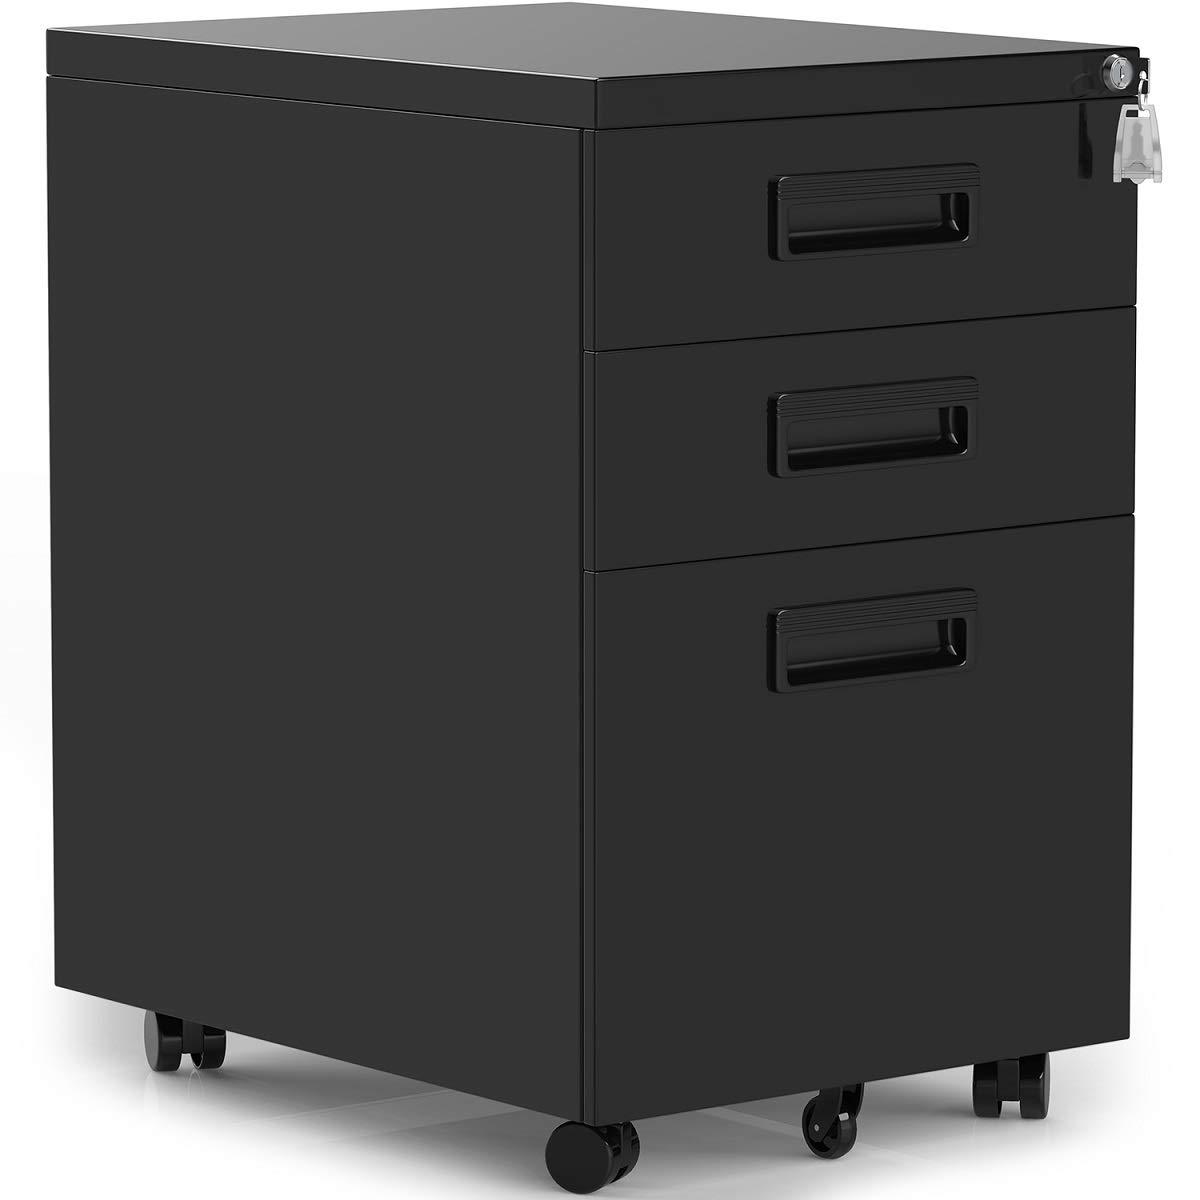 ModernLuxe 3-Drawer Mobile File Cabinet with Keys, 15.4'' x 20.5'' x 23.6'' Vertical Storage Unit (Black with Plastic Handle) by ModernLuxe